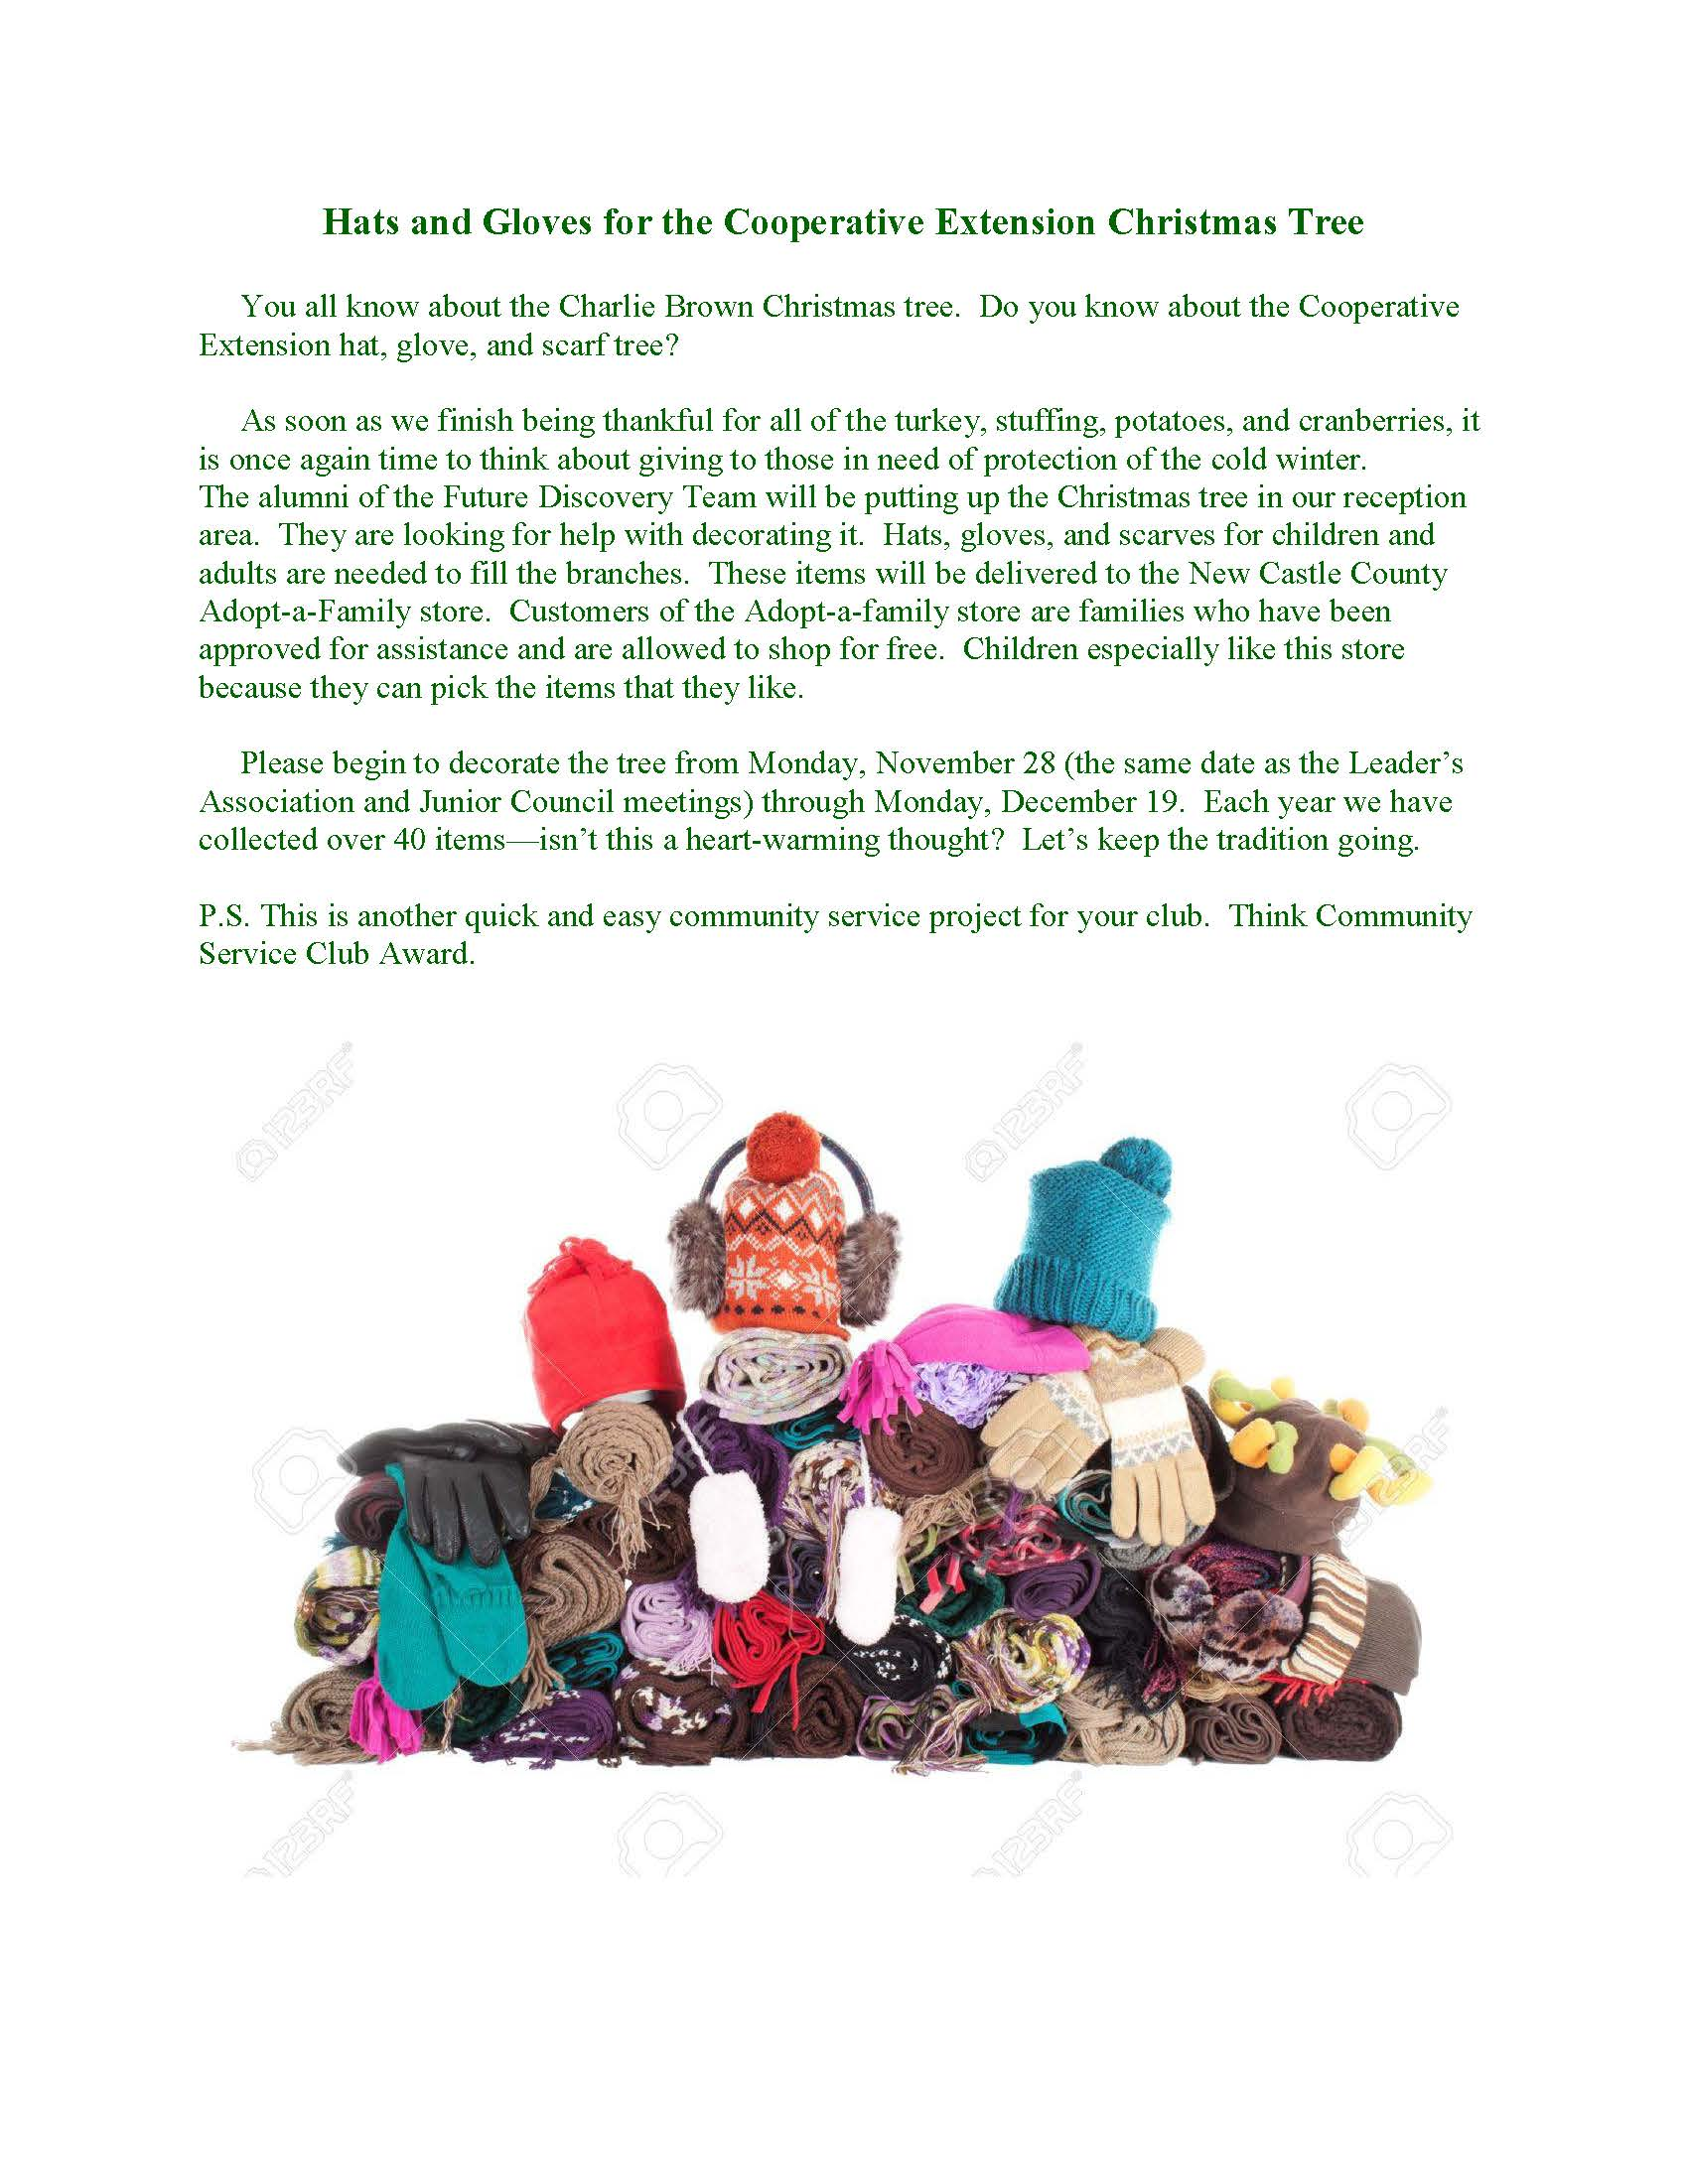 hats-and-gloves-for-the-cooperative-extension-christmas-tree